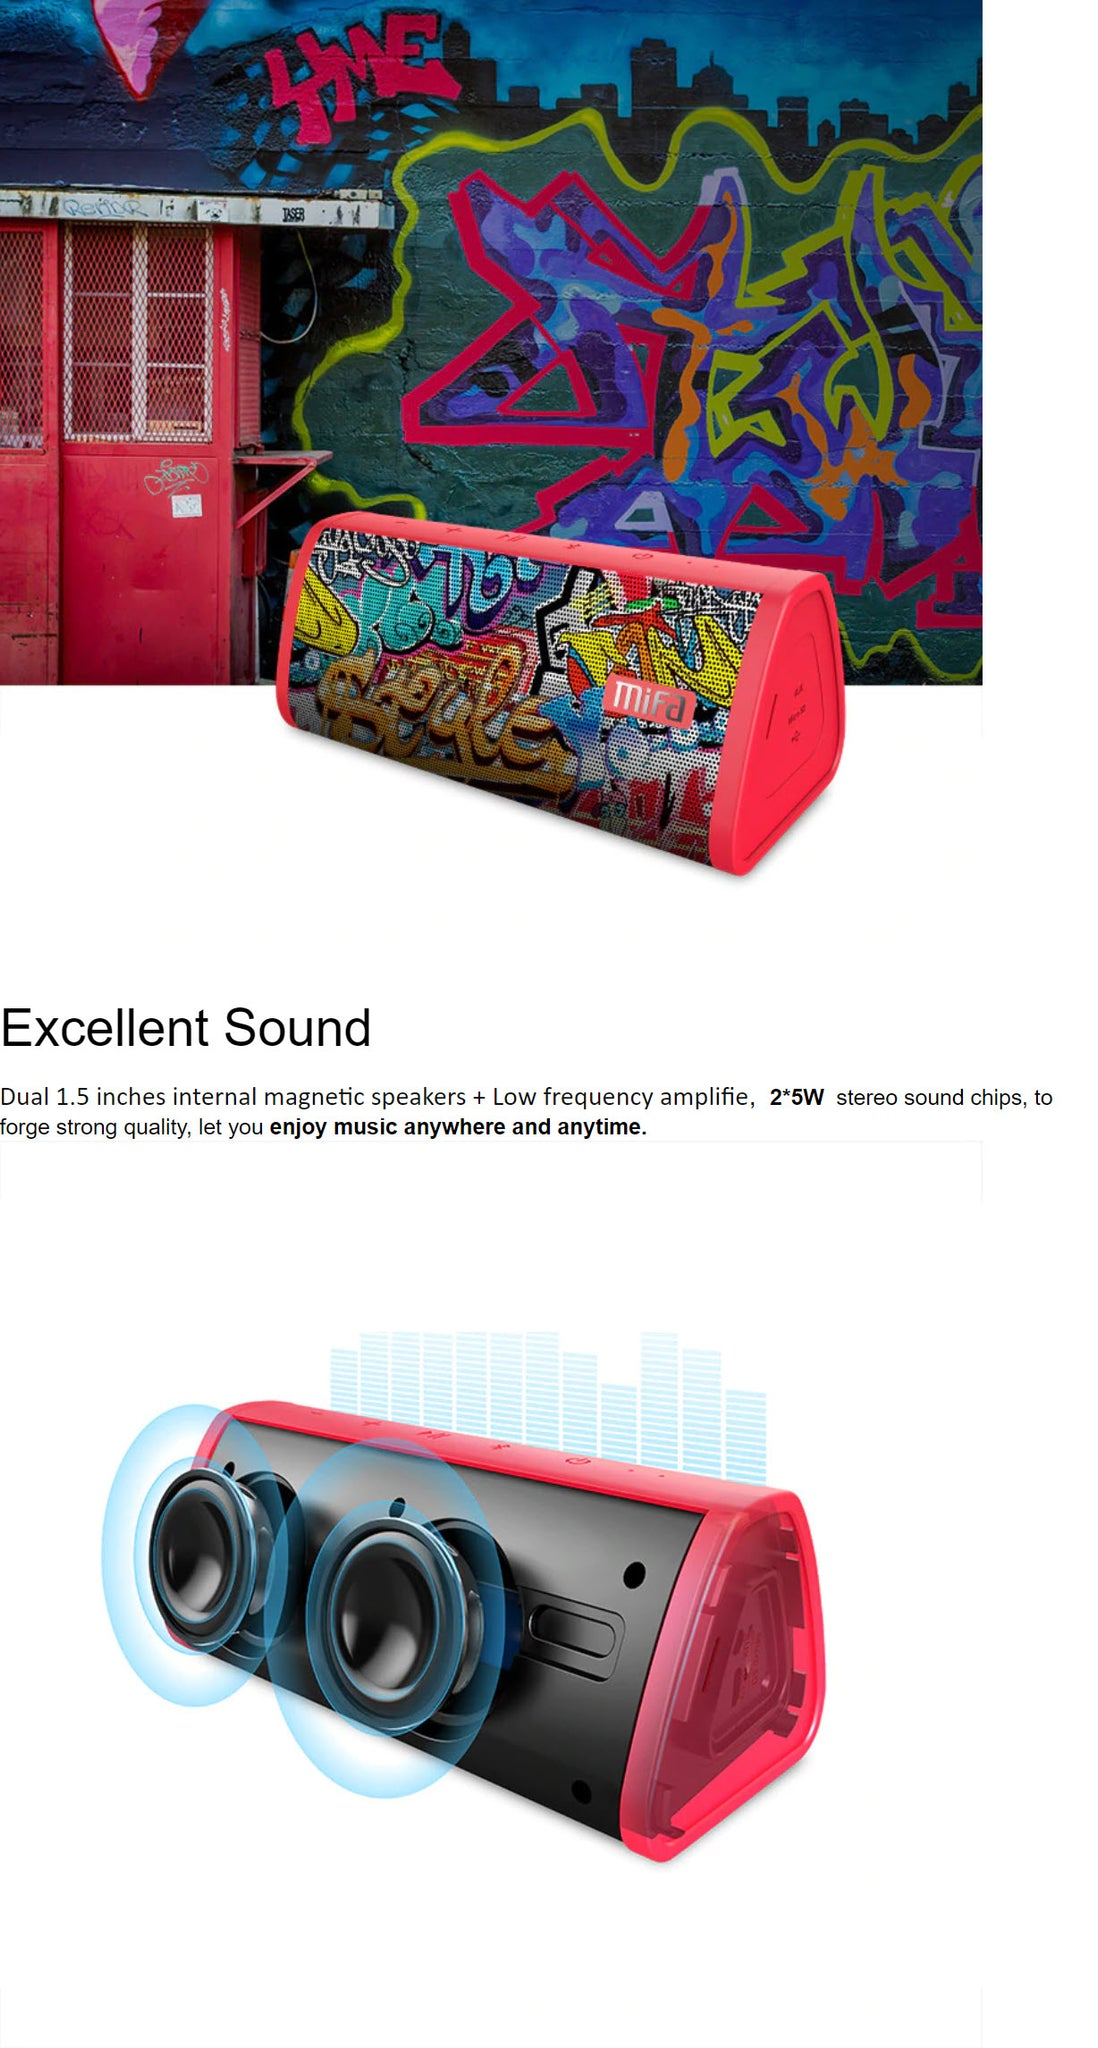 MIFA Red-Graffiti Bluetooth Speaker  Excellent Sound Product Image